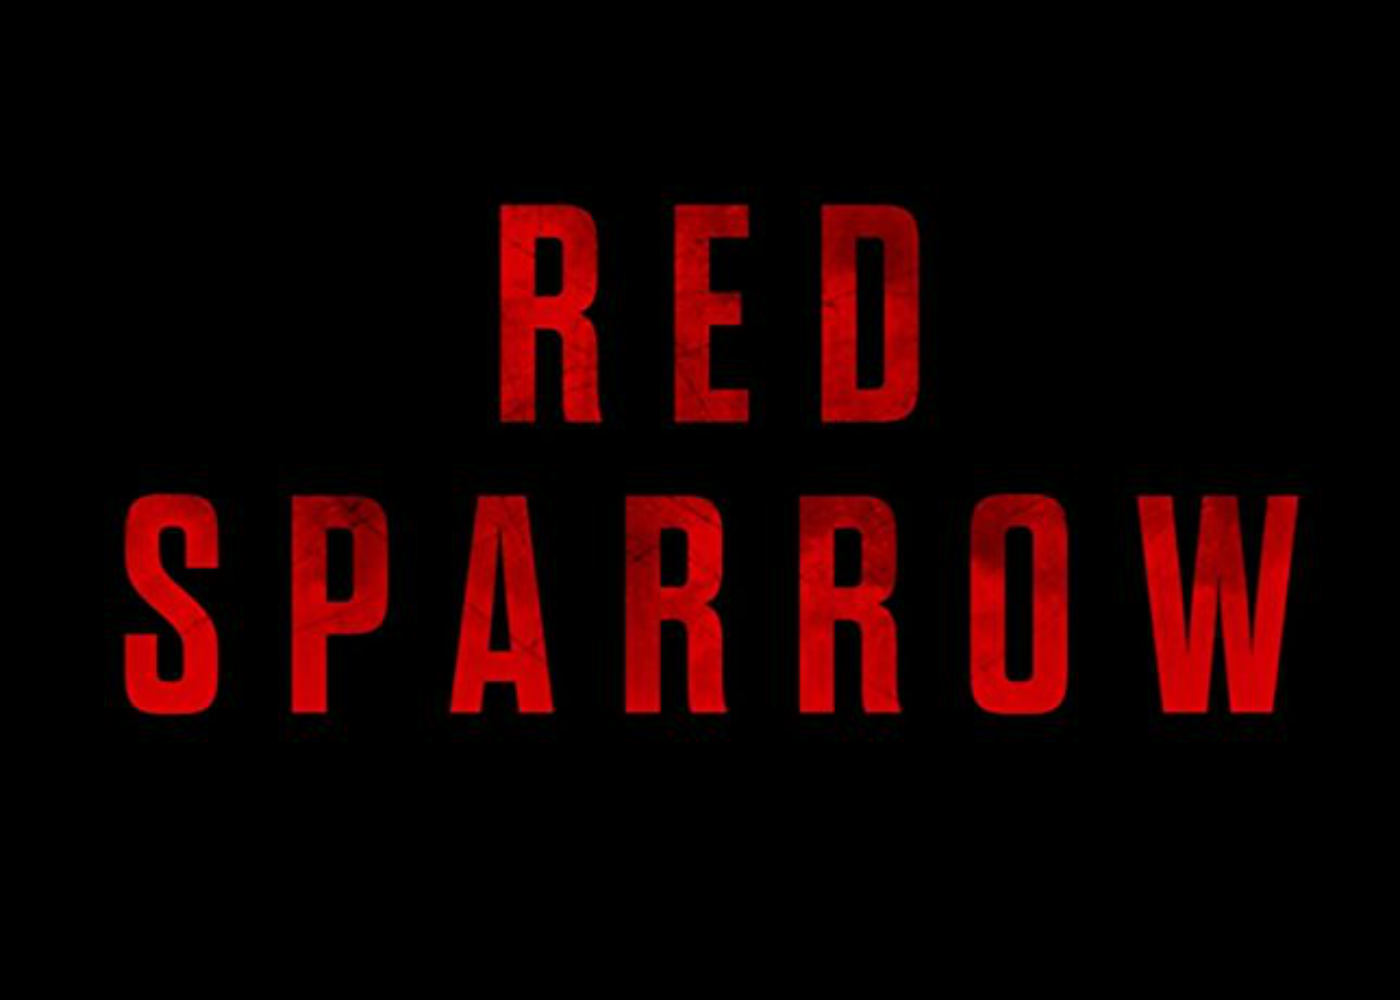 Jennifer Lawrence Plays I Spy in Red Sparrow Trailer